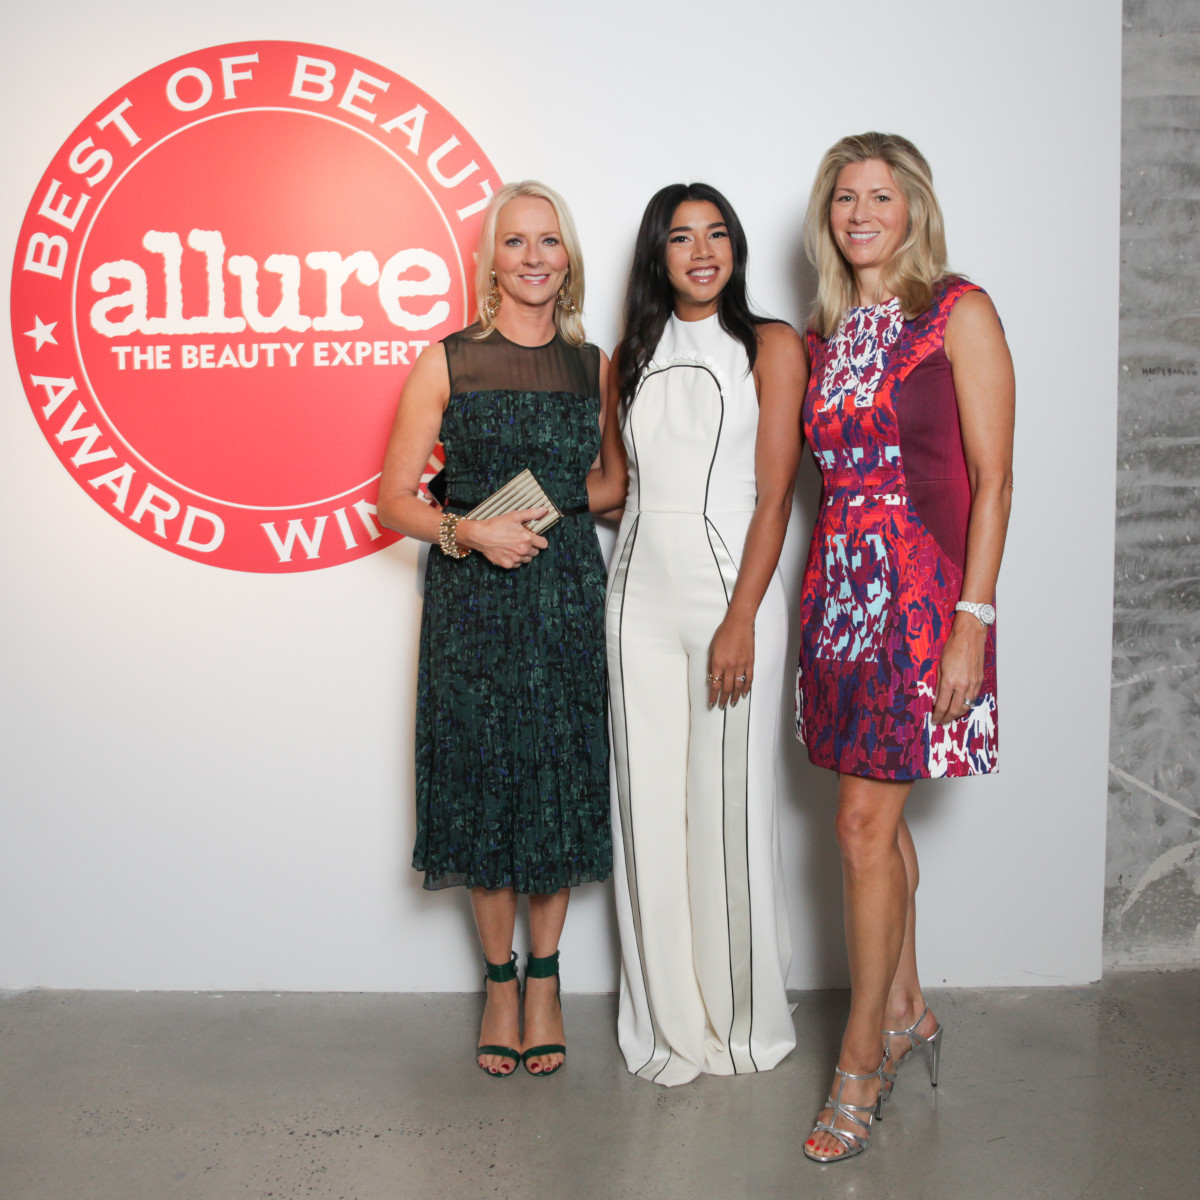 Allure Editor-in-Chief Linda Wells, Hannah Bronfman and Allure Publisher Agnes B. Chapski. Photo: Allure/BFA